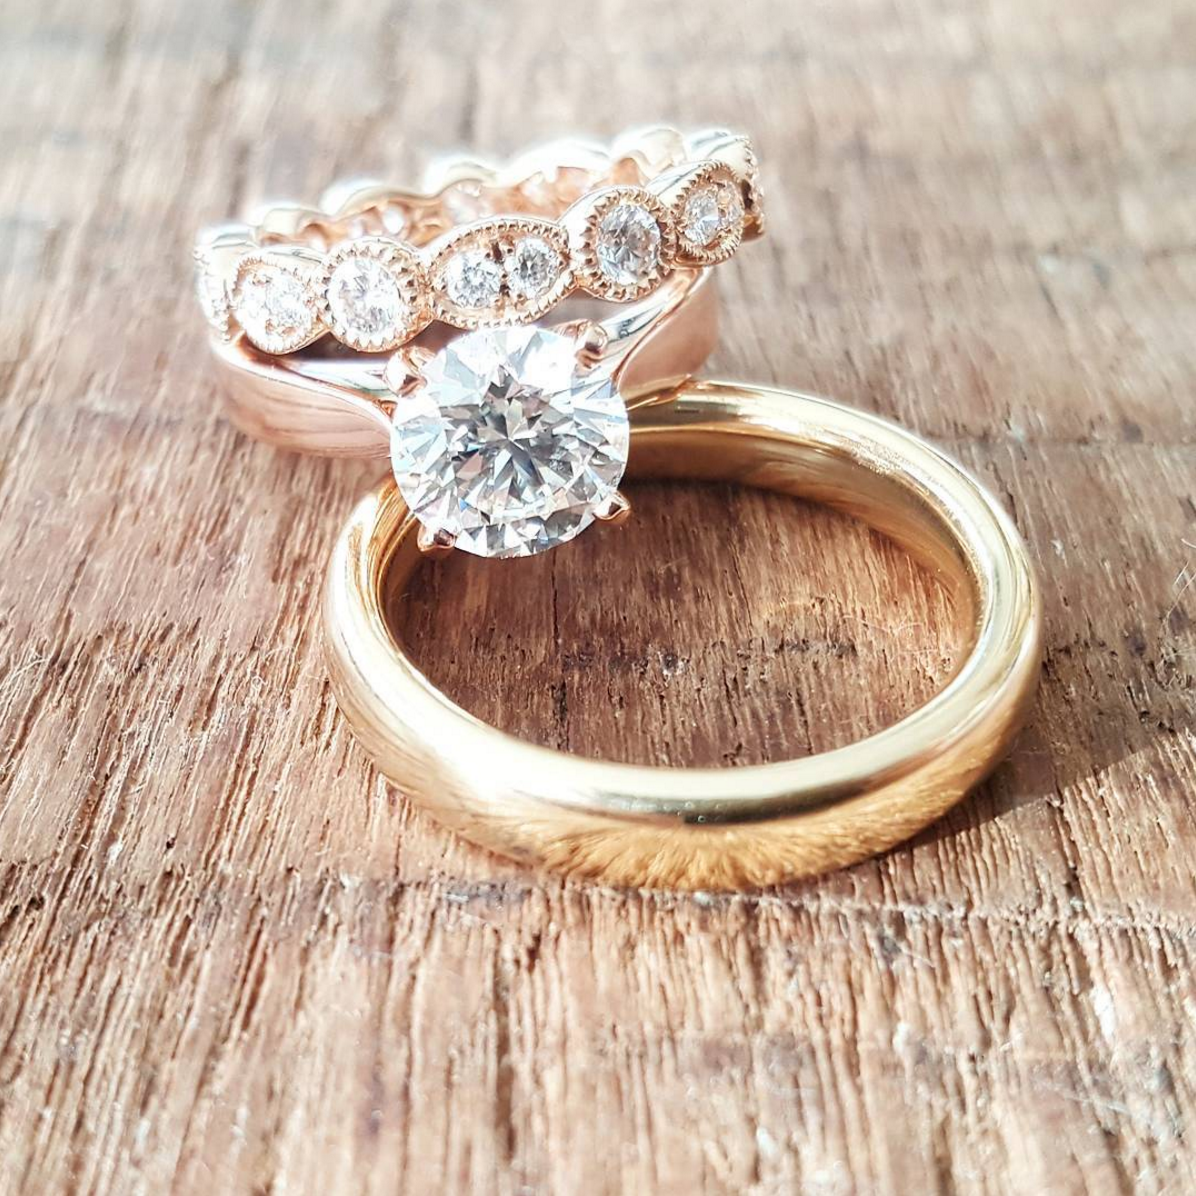 Rose gold and gold engagement and wedding ring inspiration from